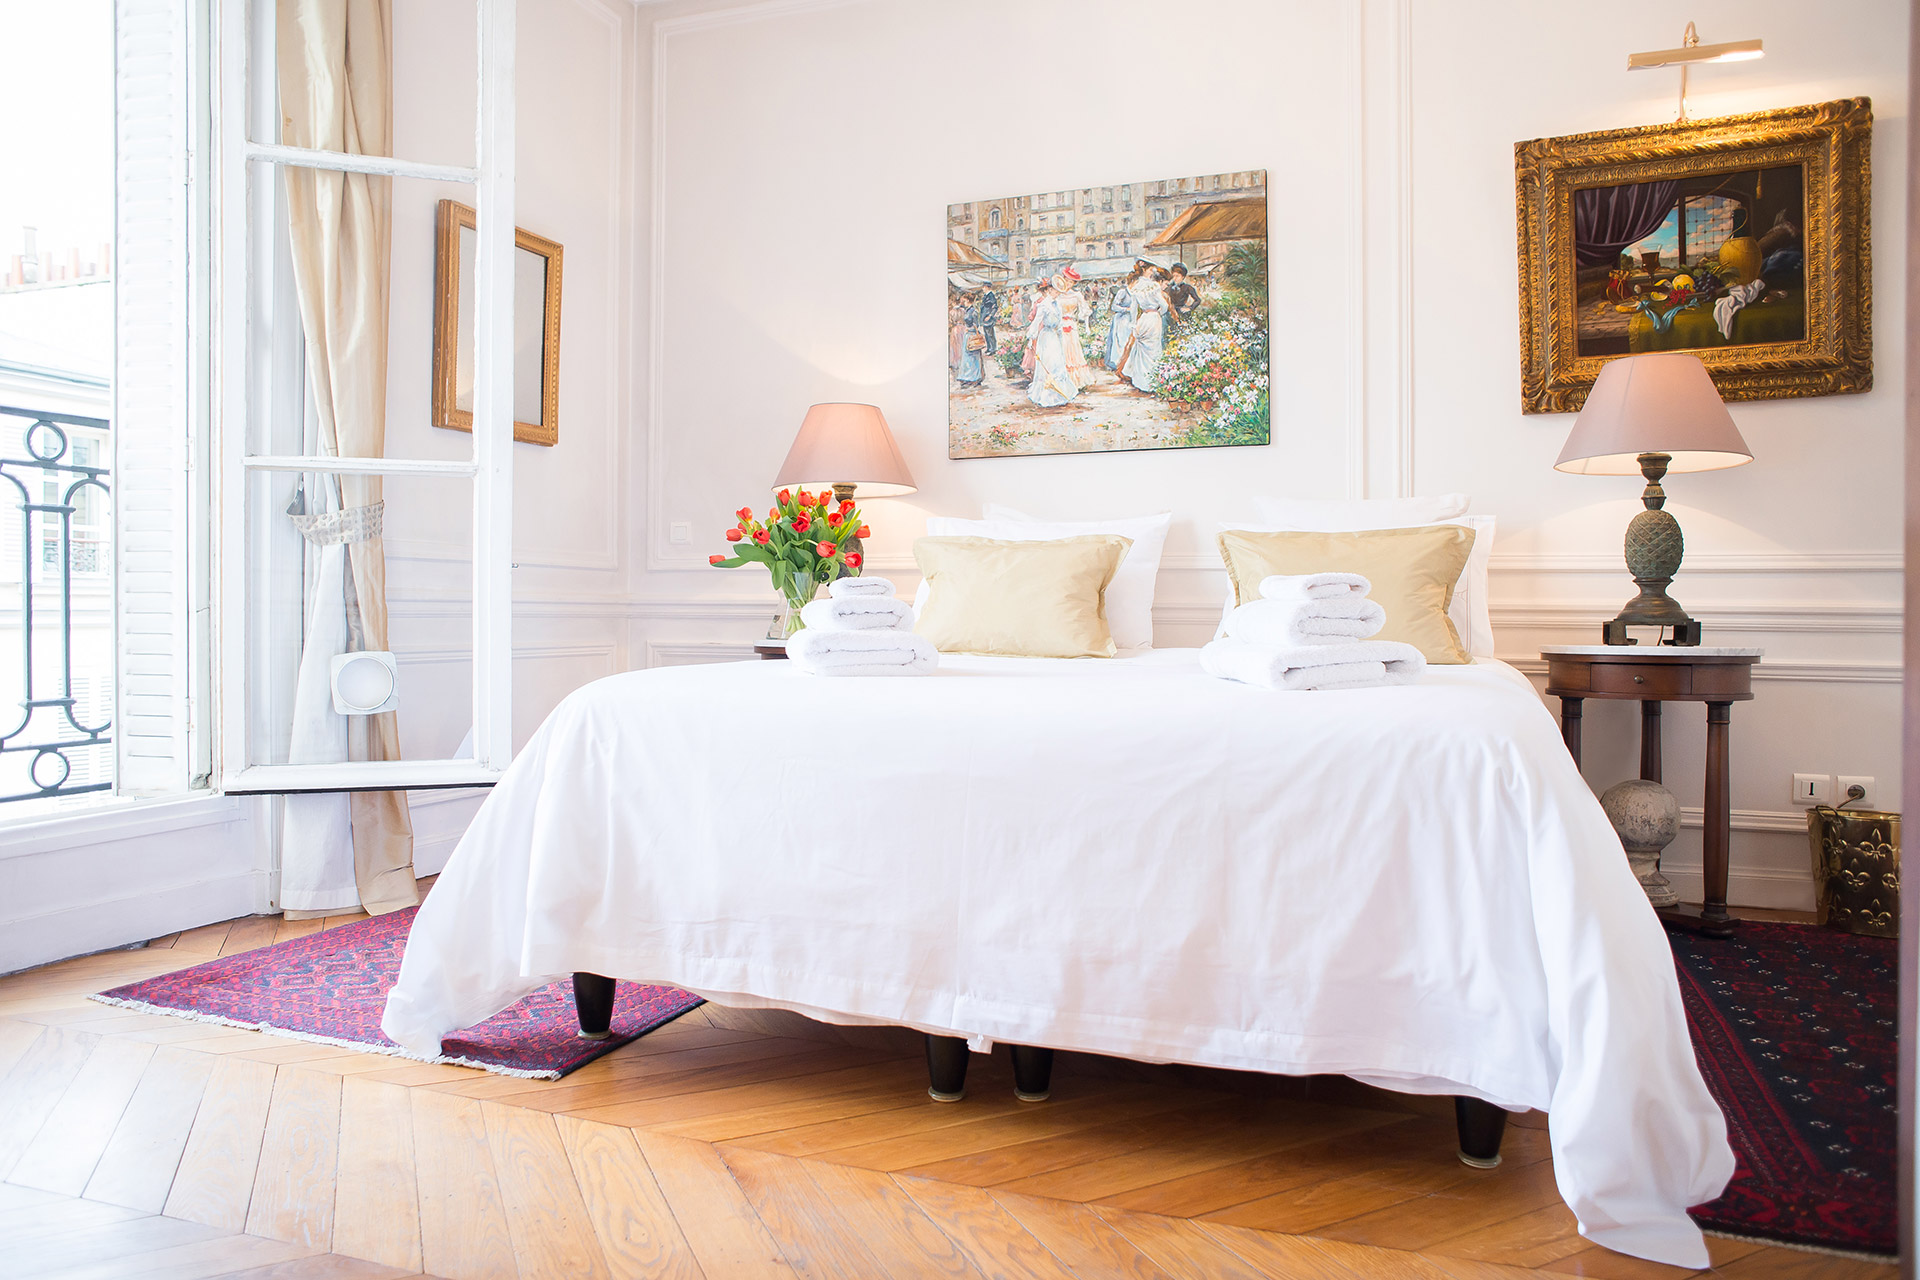 Large windows in this bedroom of the Chateauneuf vacation rental offered by Paris Perfect